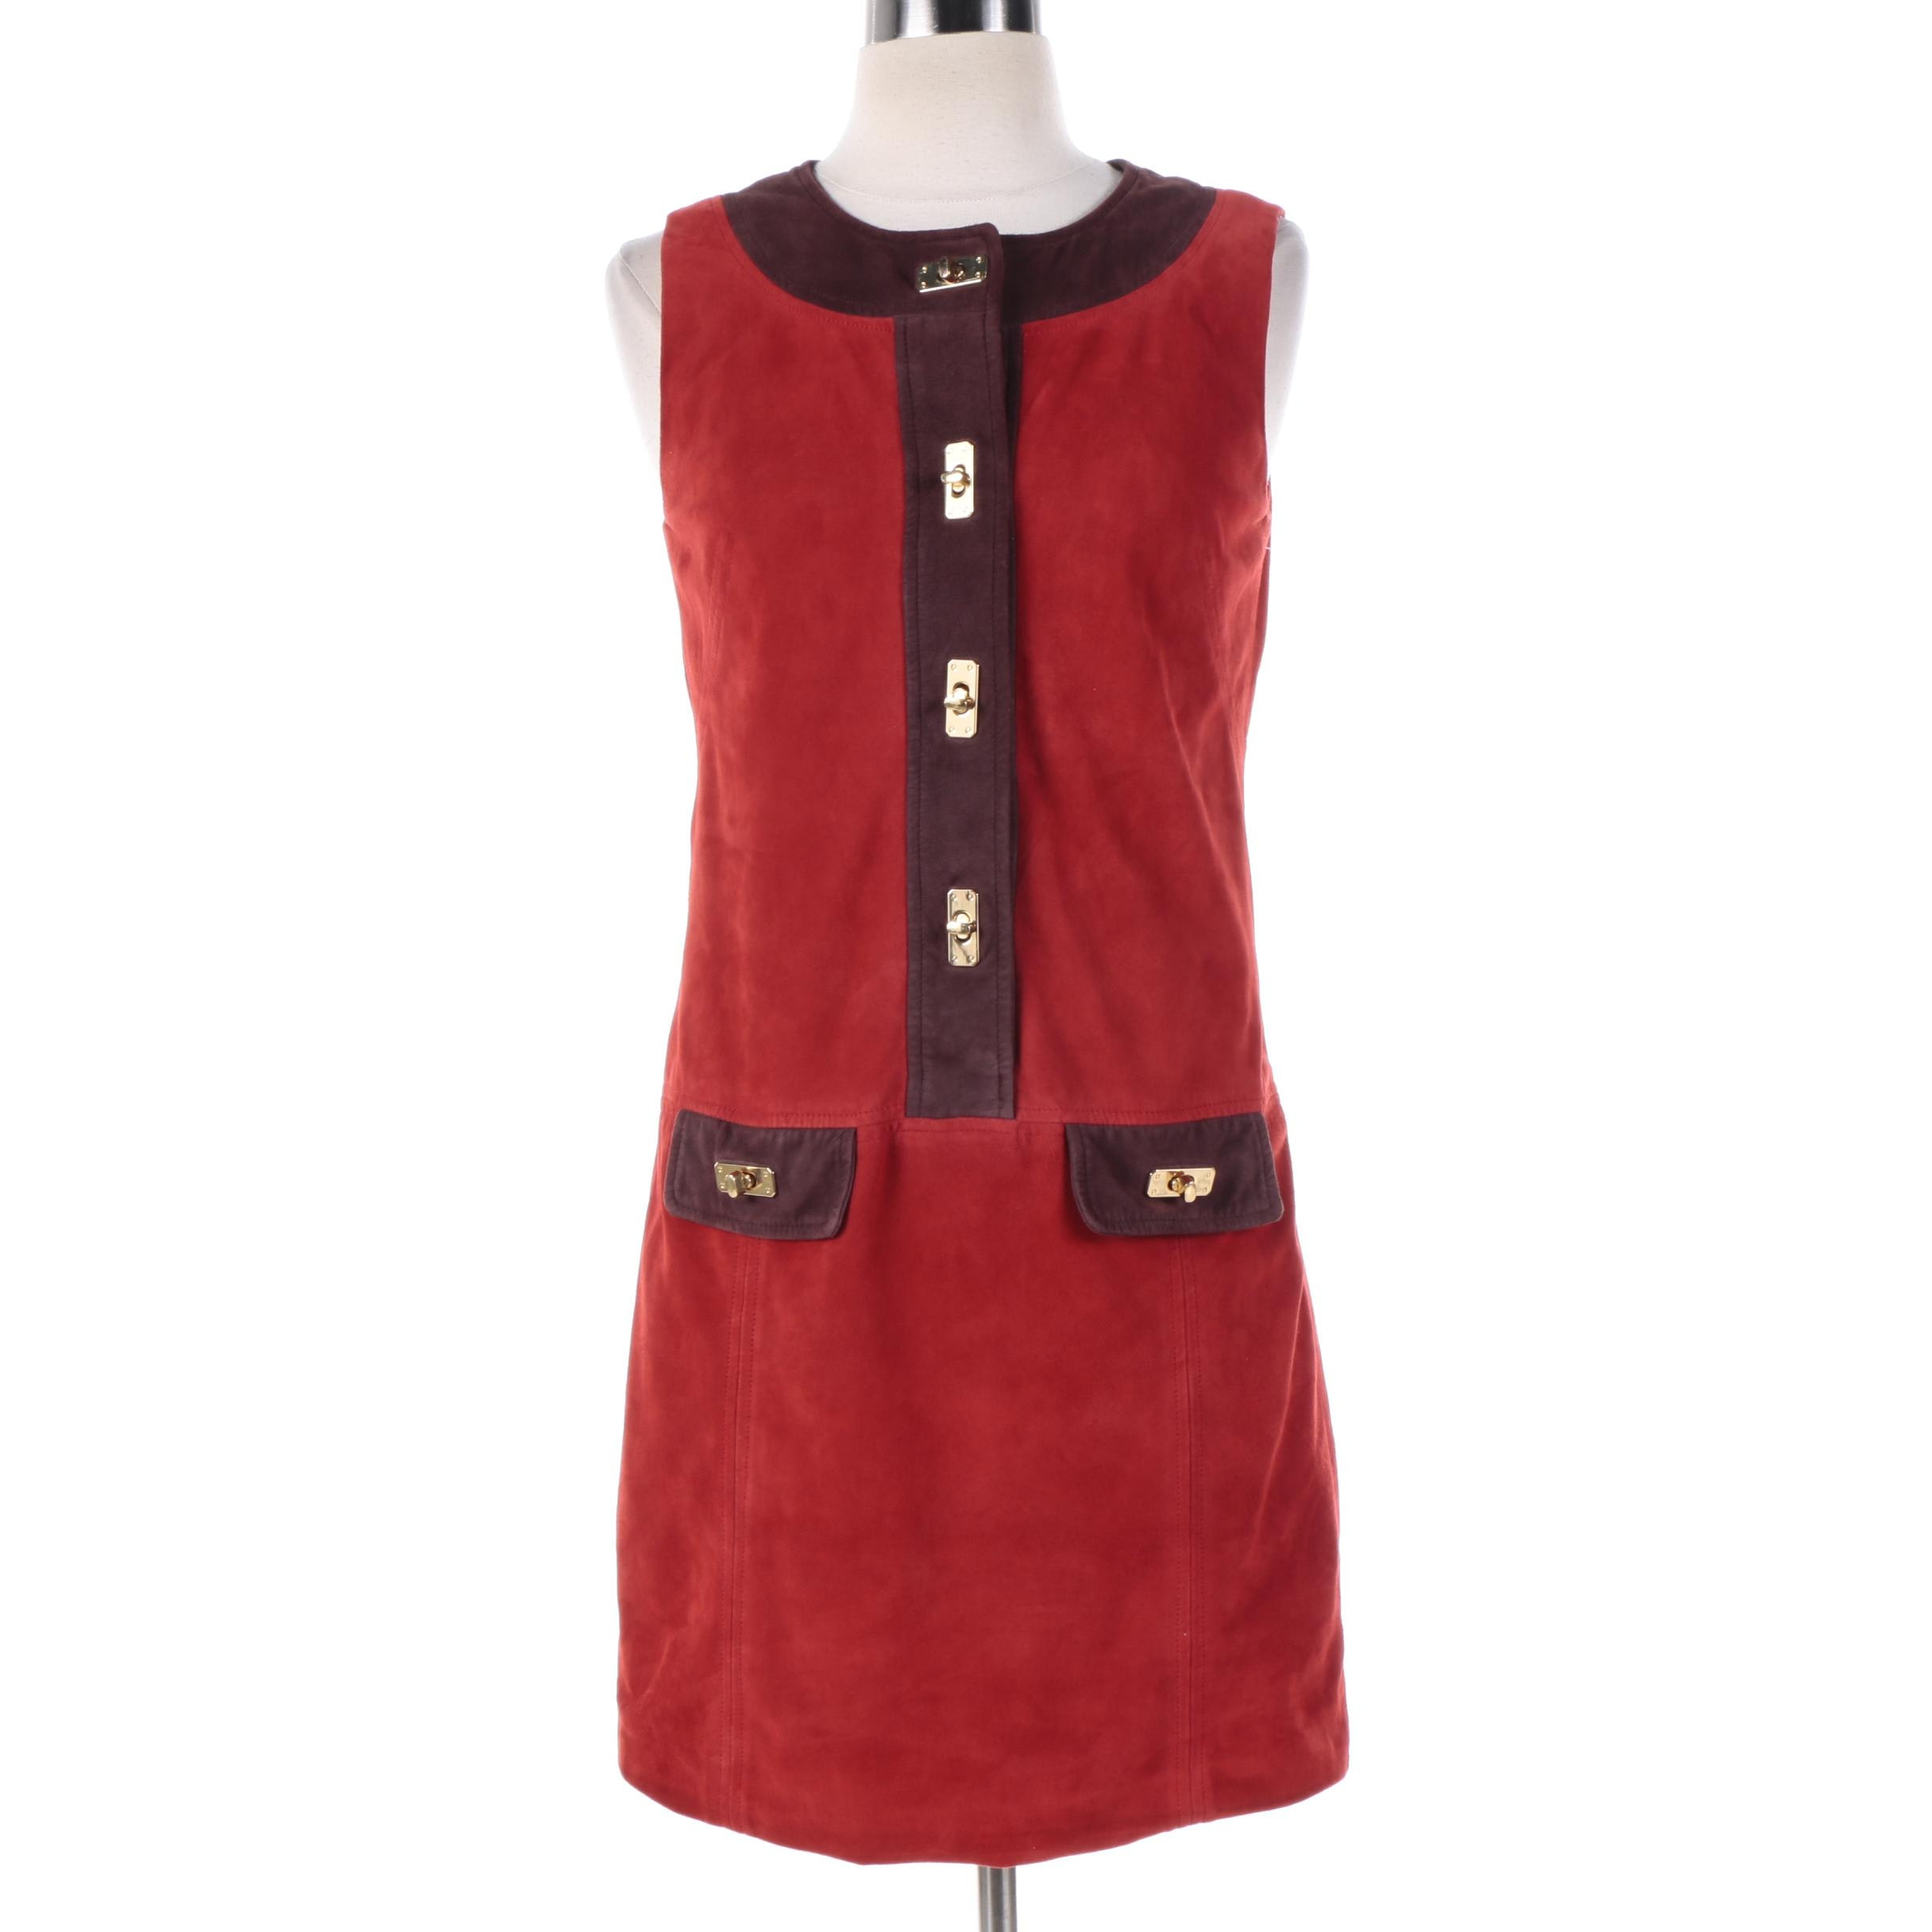 Vintage Milly of New York Burgundy and Brown Suede Sleeveless Mod Dress